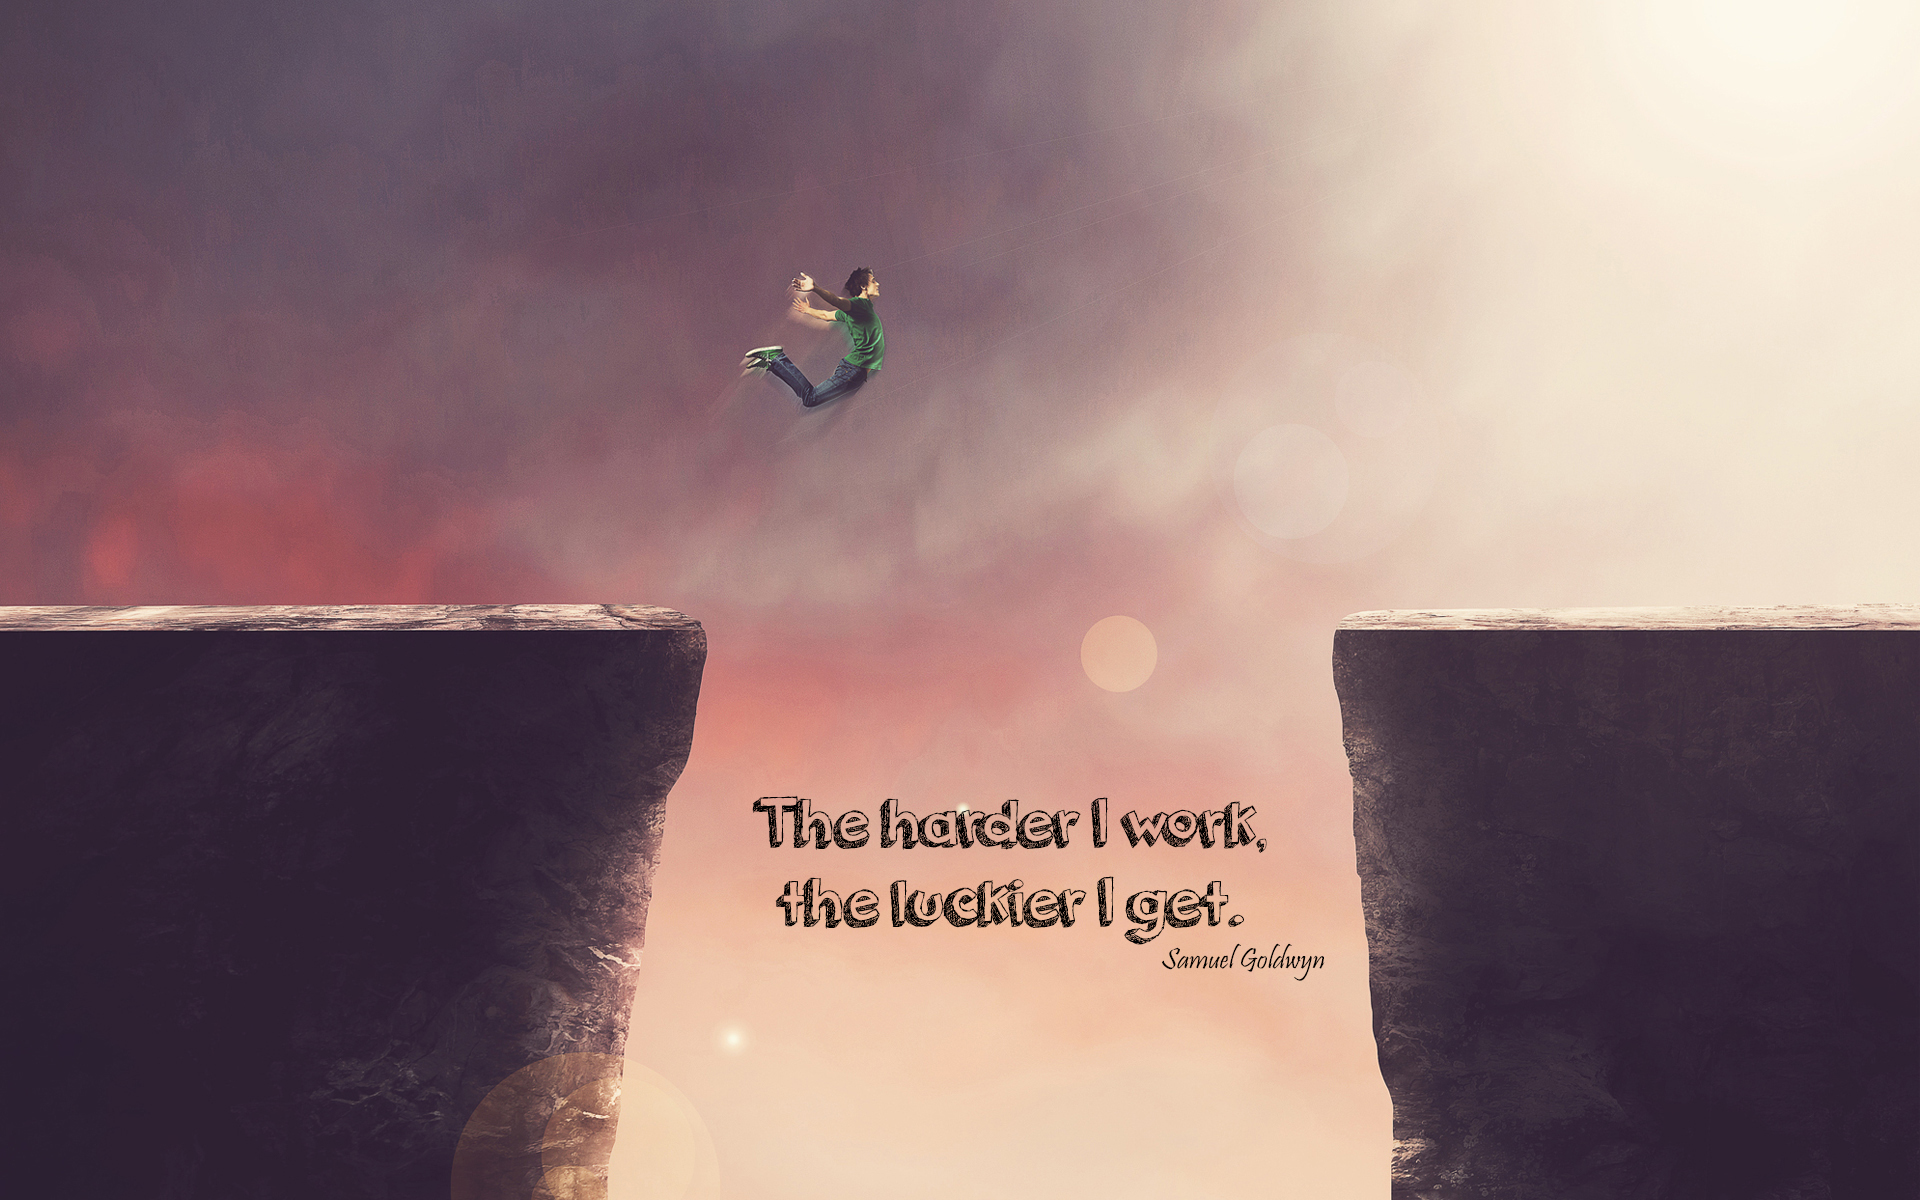 The harder I work The luckier I get Wallpaper Wallpapers 1920x1200